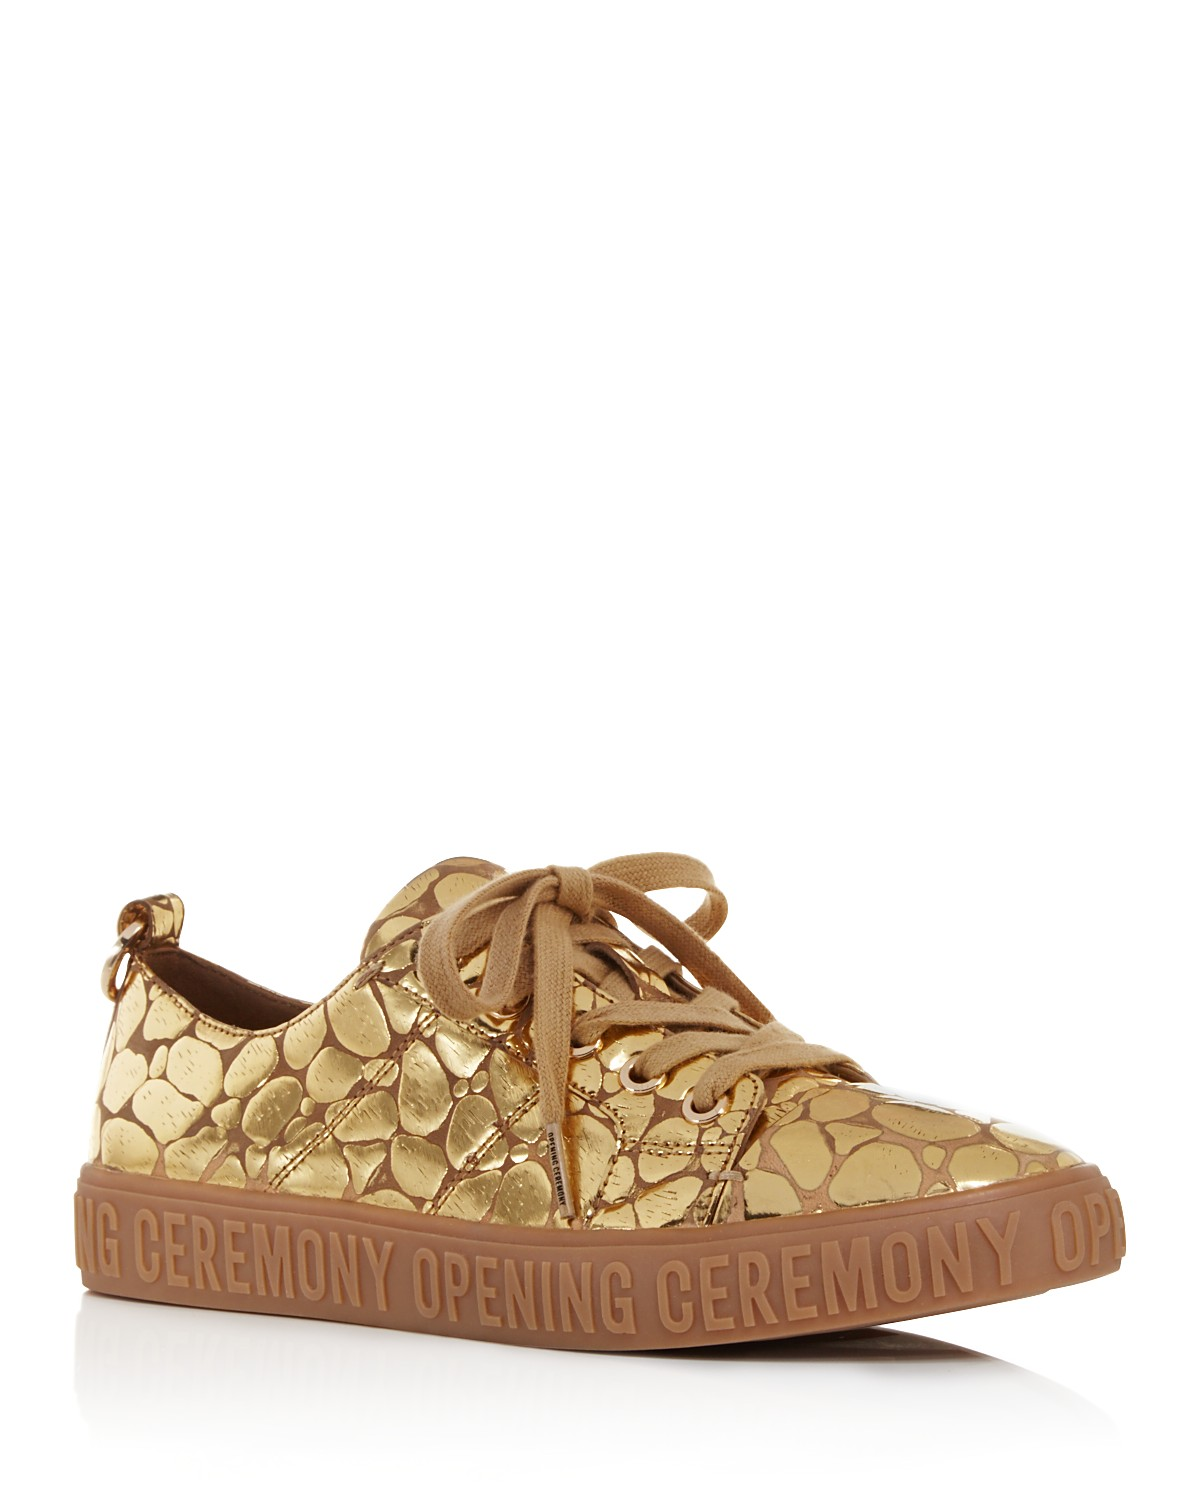 Opening Ceremony La Cienga low-top sneakers collections cheap price NxoT6ClUGn